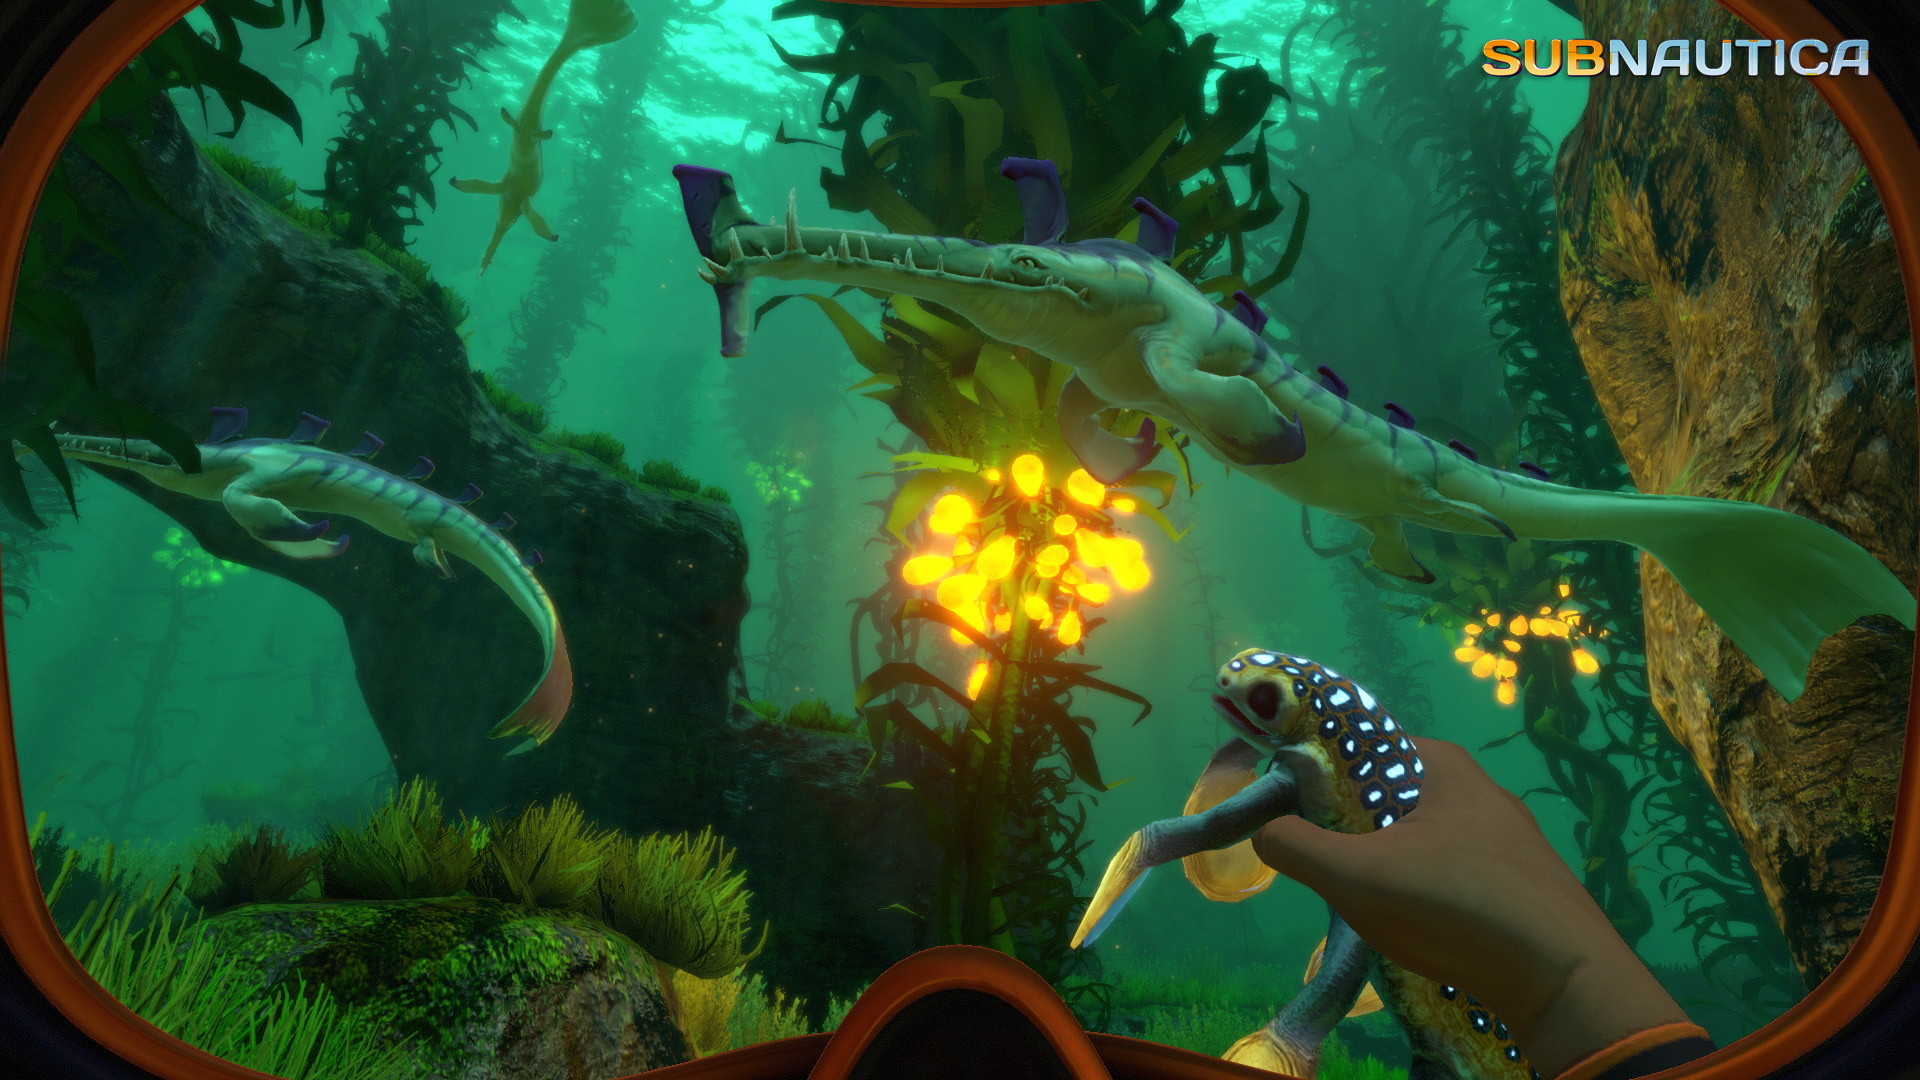 Subnautica - screenshot 4